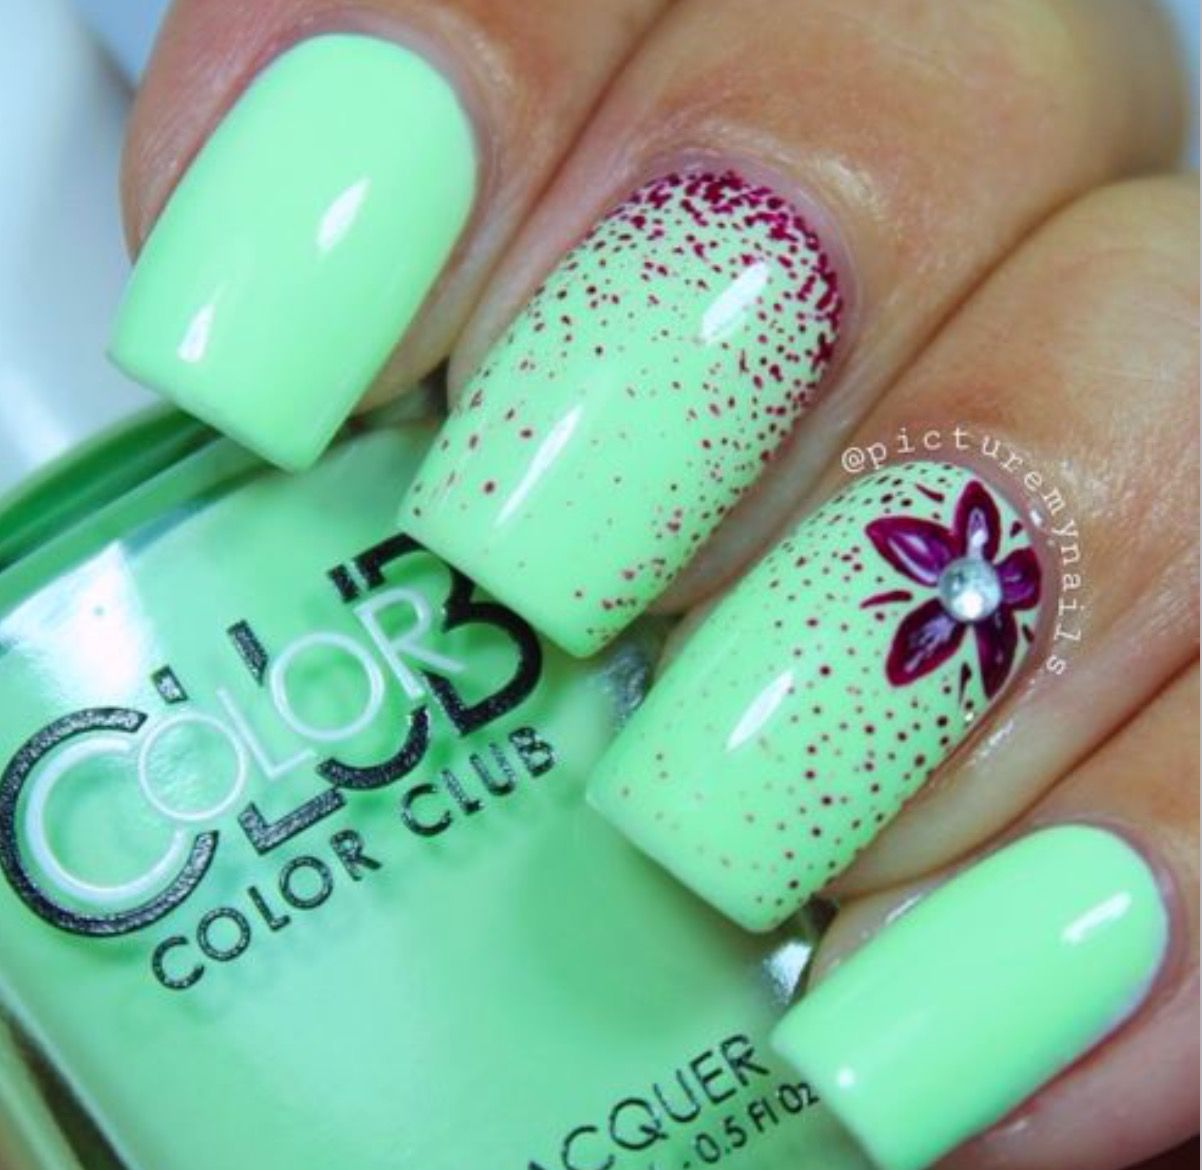 20 Awesome Nail Arts You Must Love | Diseños de uñas, Manicuras y ...